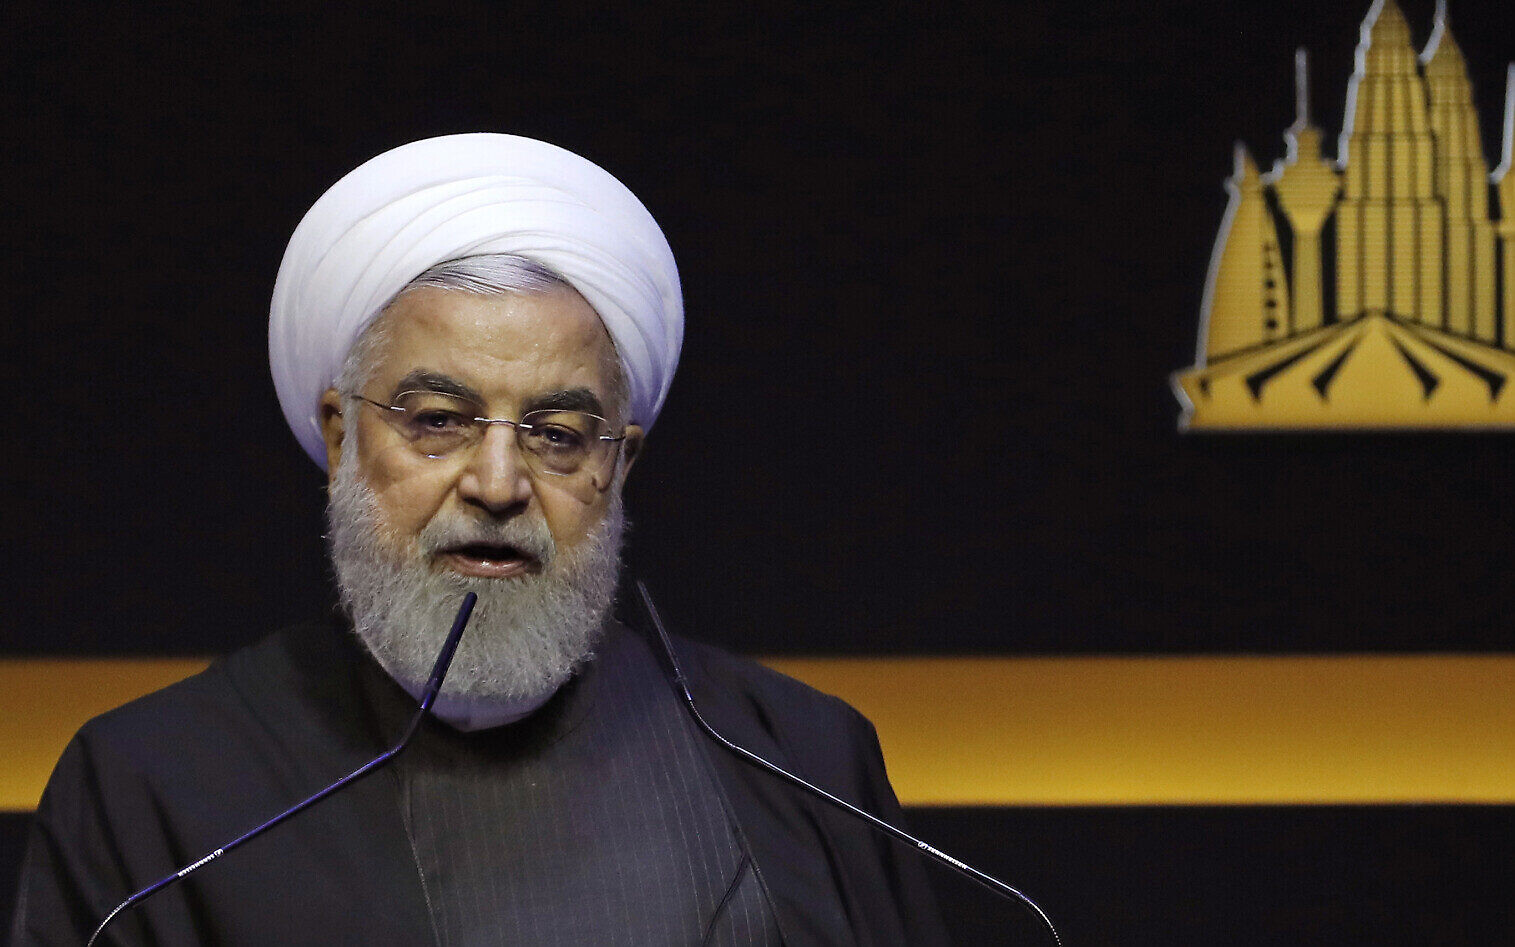 Rouhani called on London to adjust its position on Suleimani's death